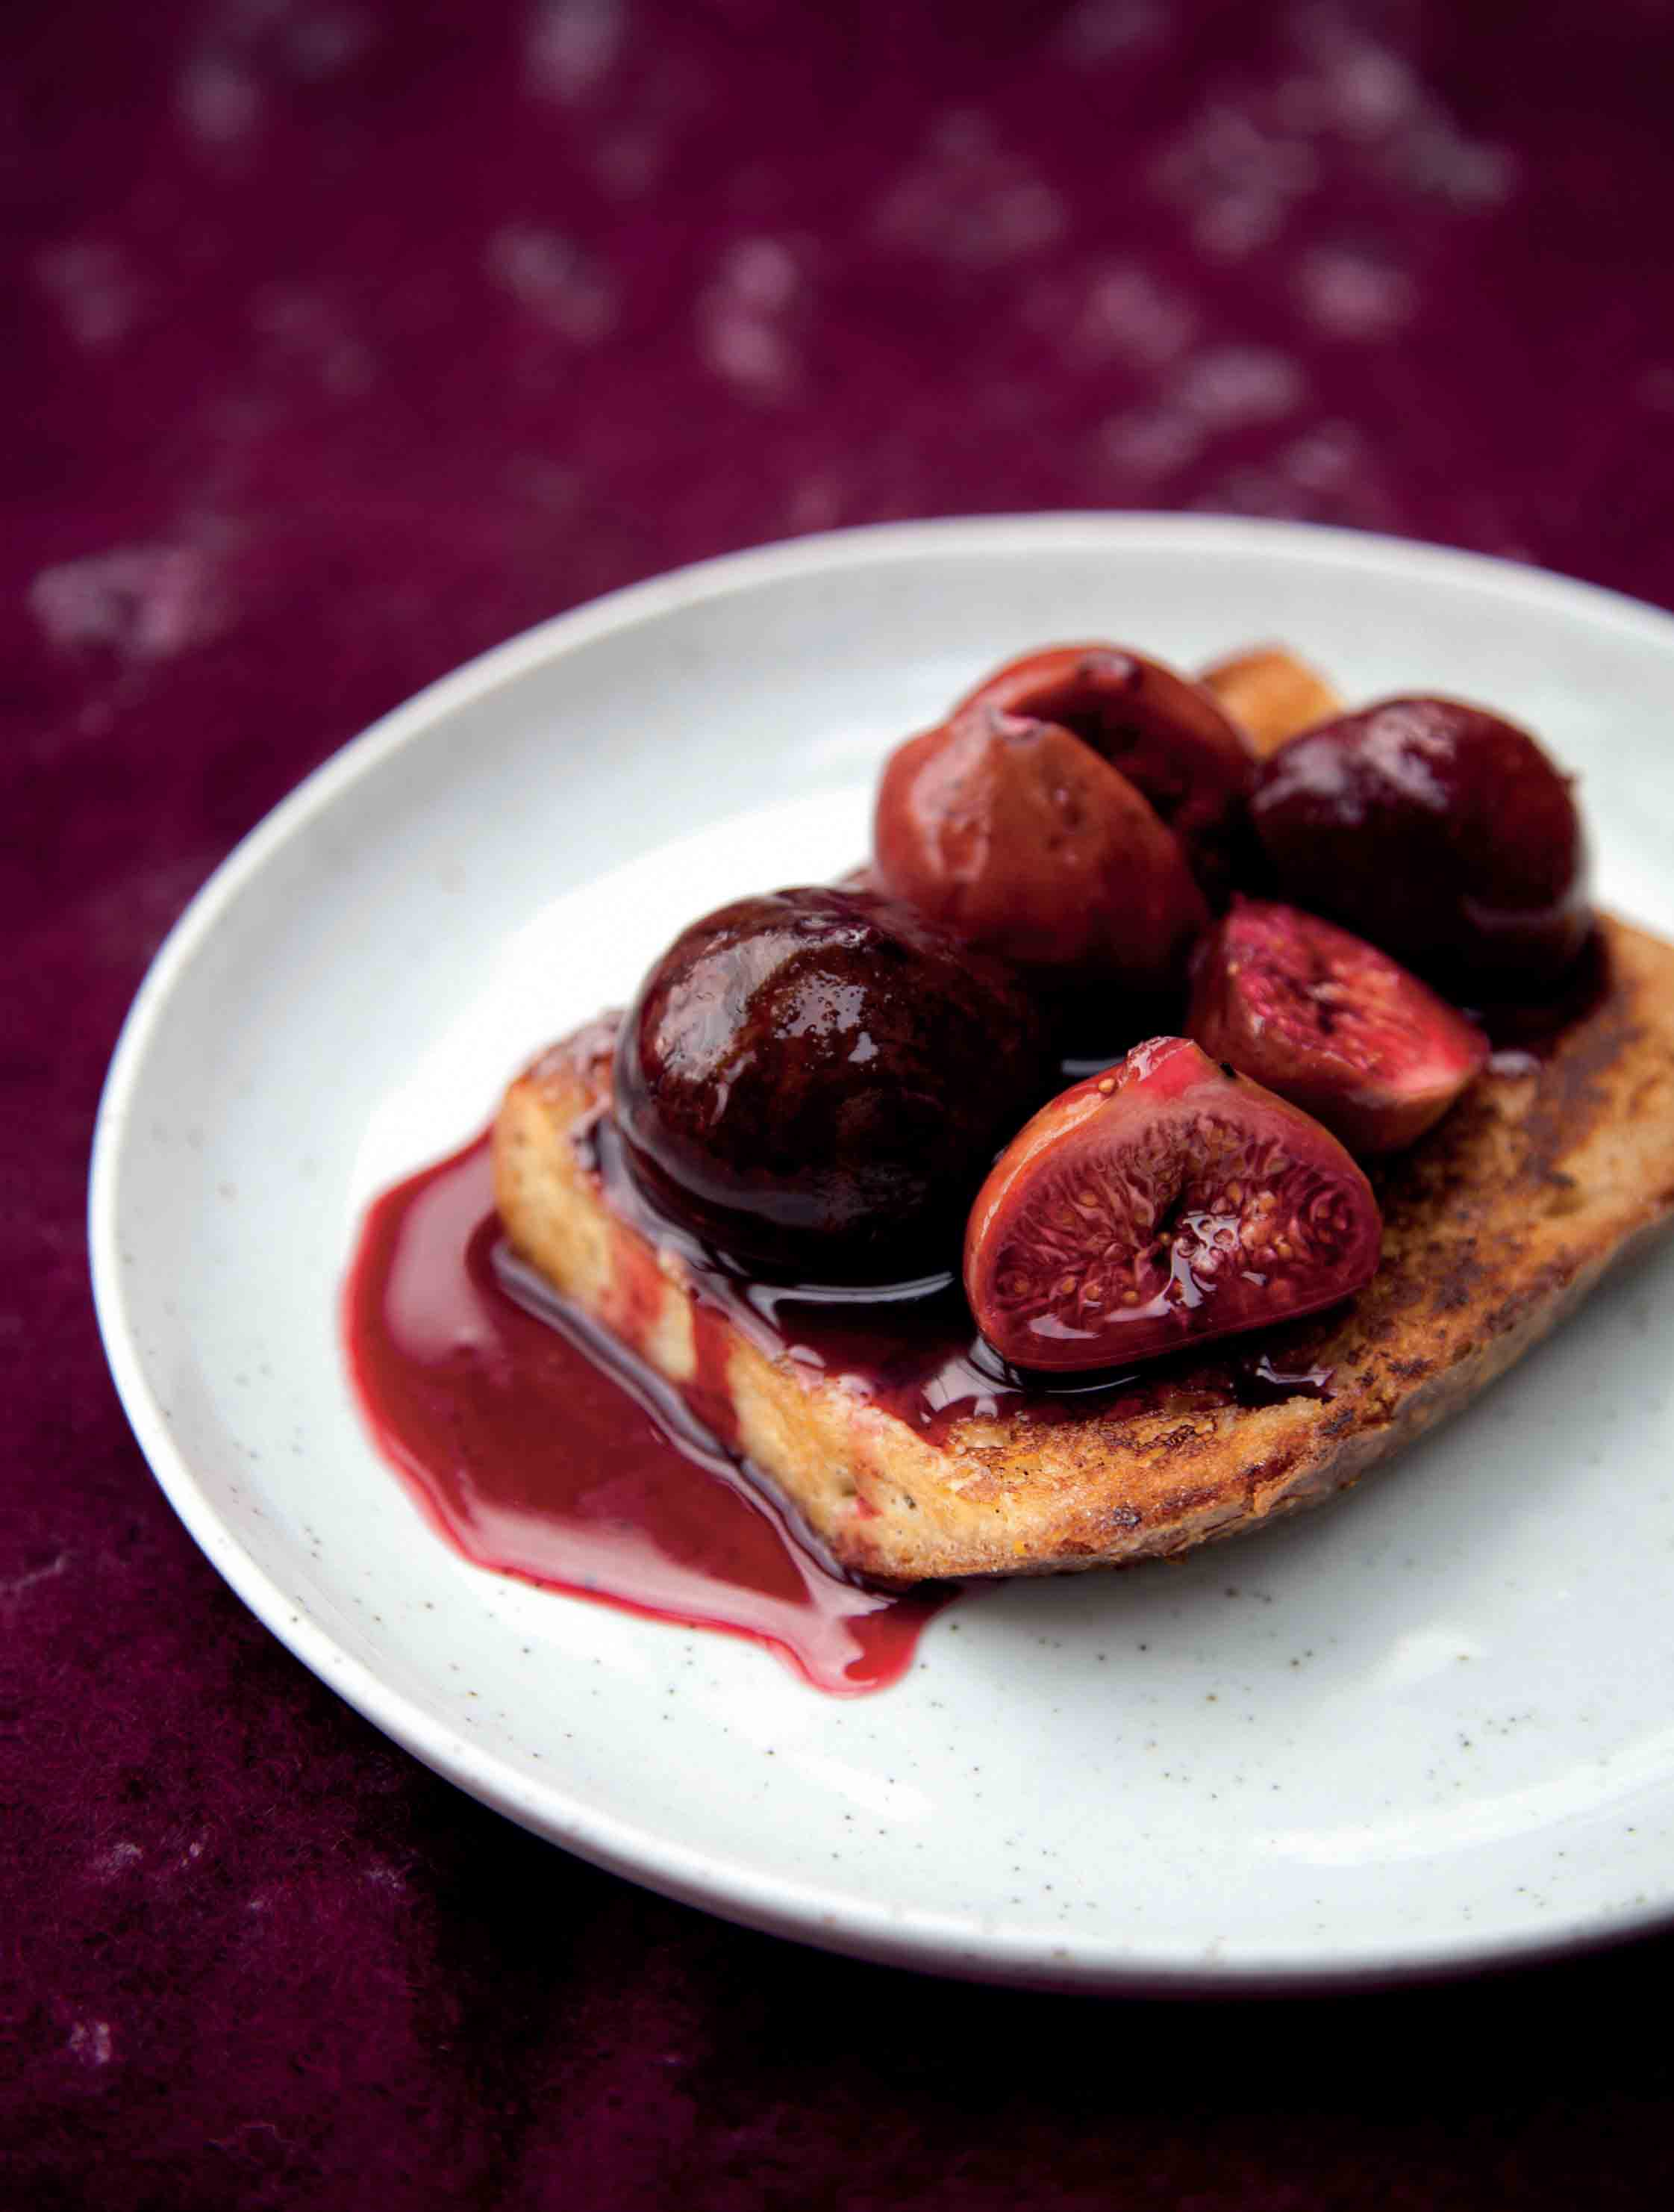 Pain perdu with roasted figs